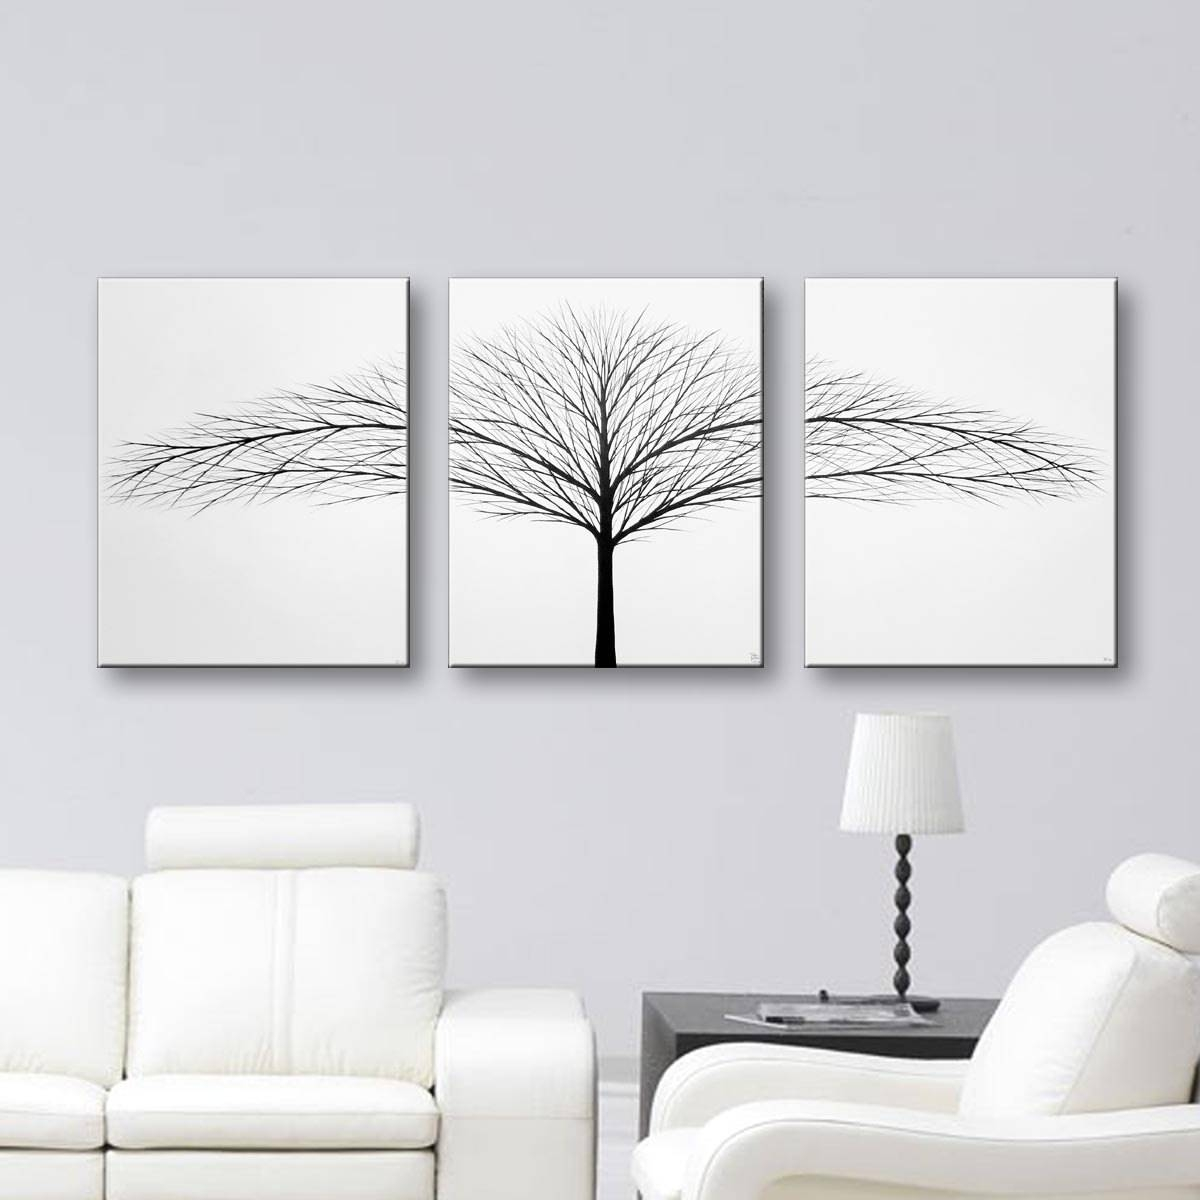 Canvas Art Bedroom Wall Decor 3 Piece Wall Art Minimalist Throughout 2018 Black And White Wall Art (View 9 of 16)